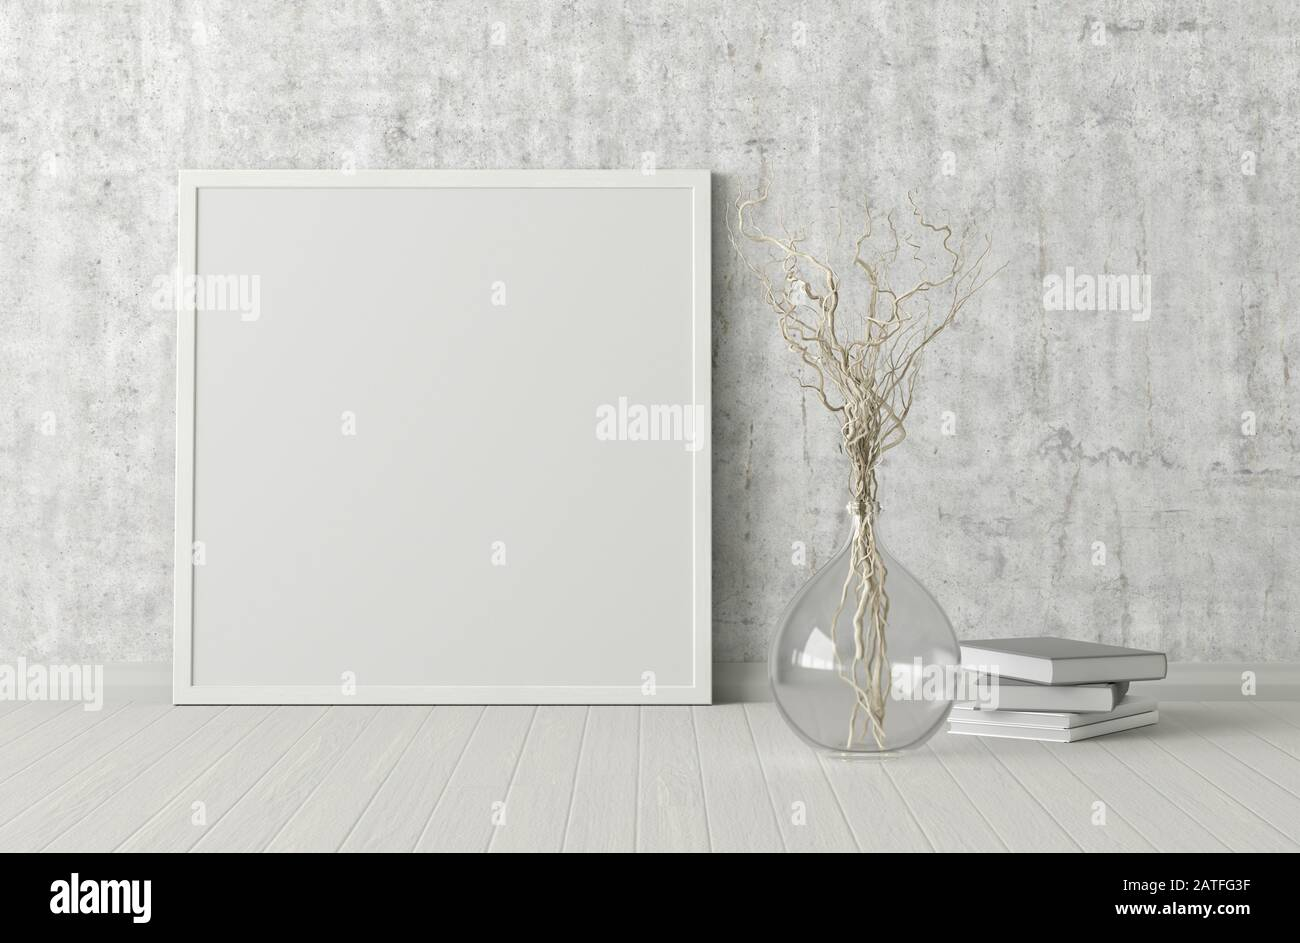 https www alamy com blank square poster frame mock up standing on white floor next to concrete wall with vase and books clipping path around poster 3d illustration image342090659 html